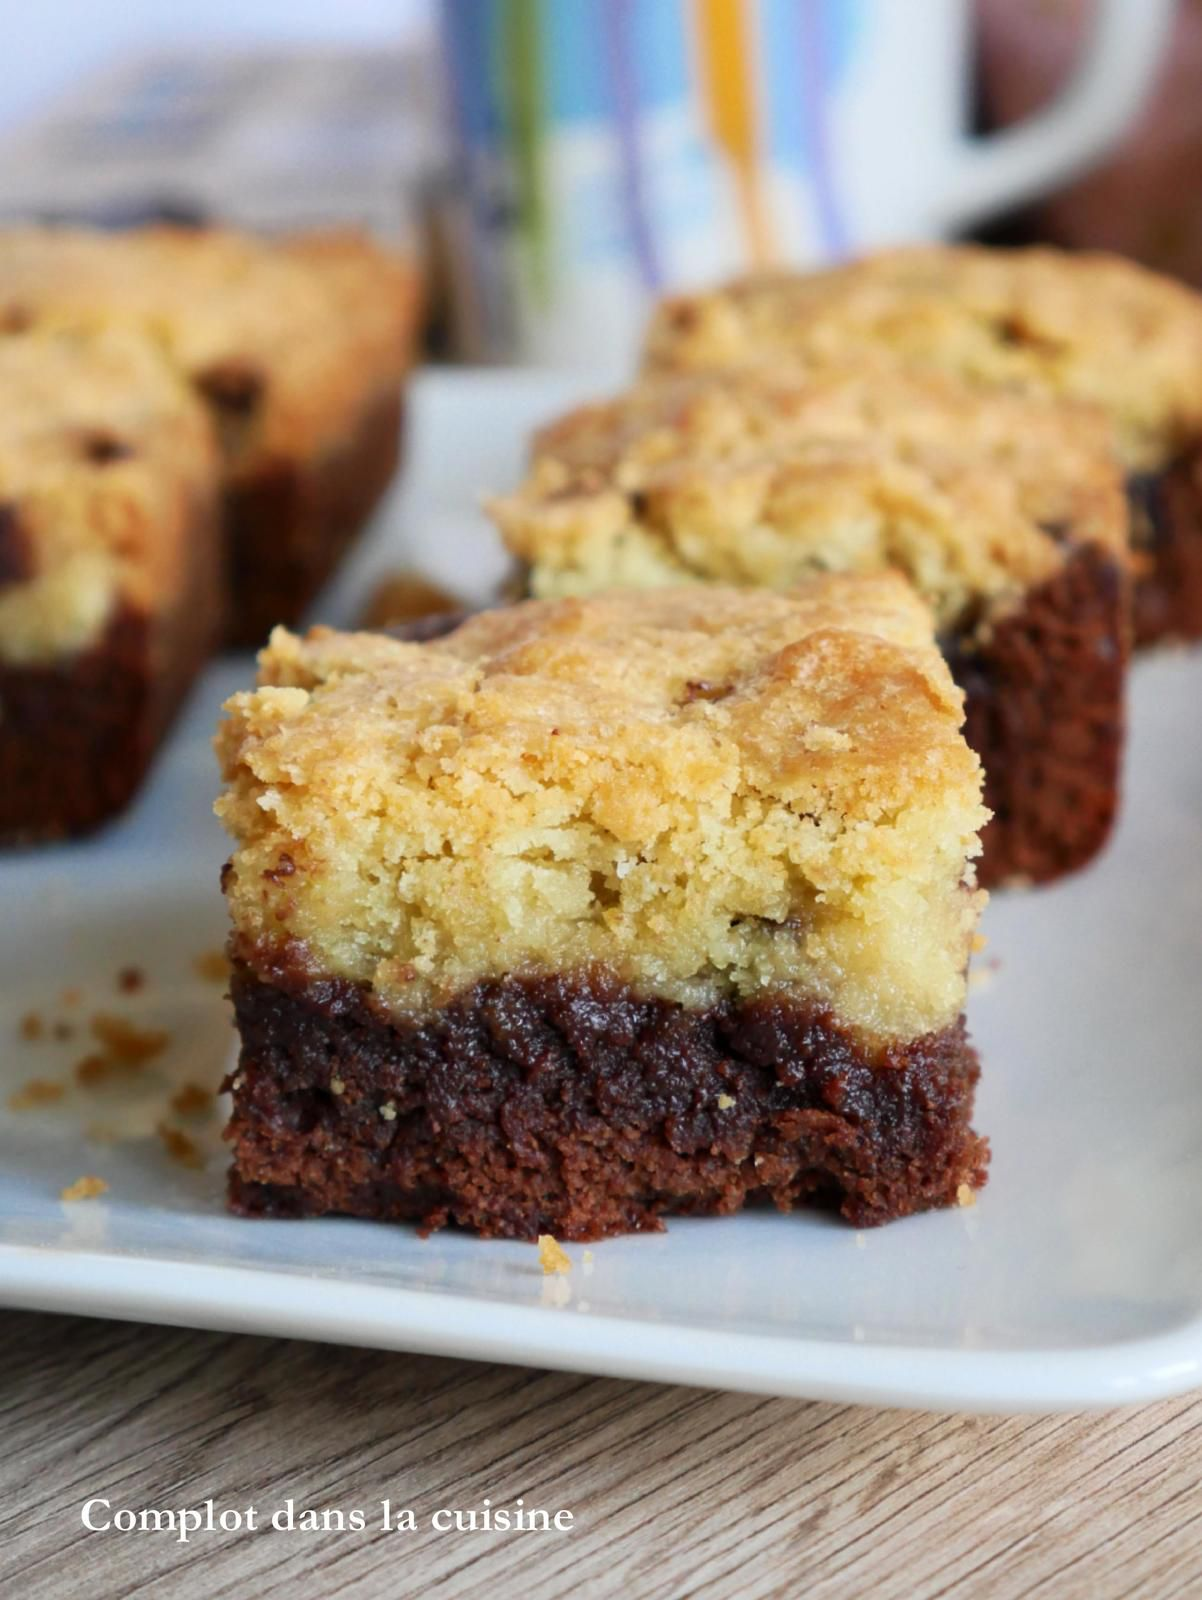 Brookies – Le mariage entre un brownie et un cookie